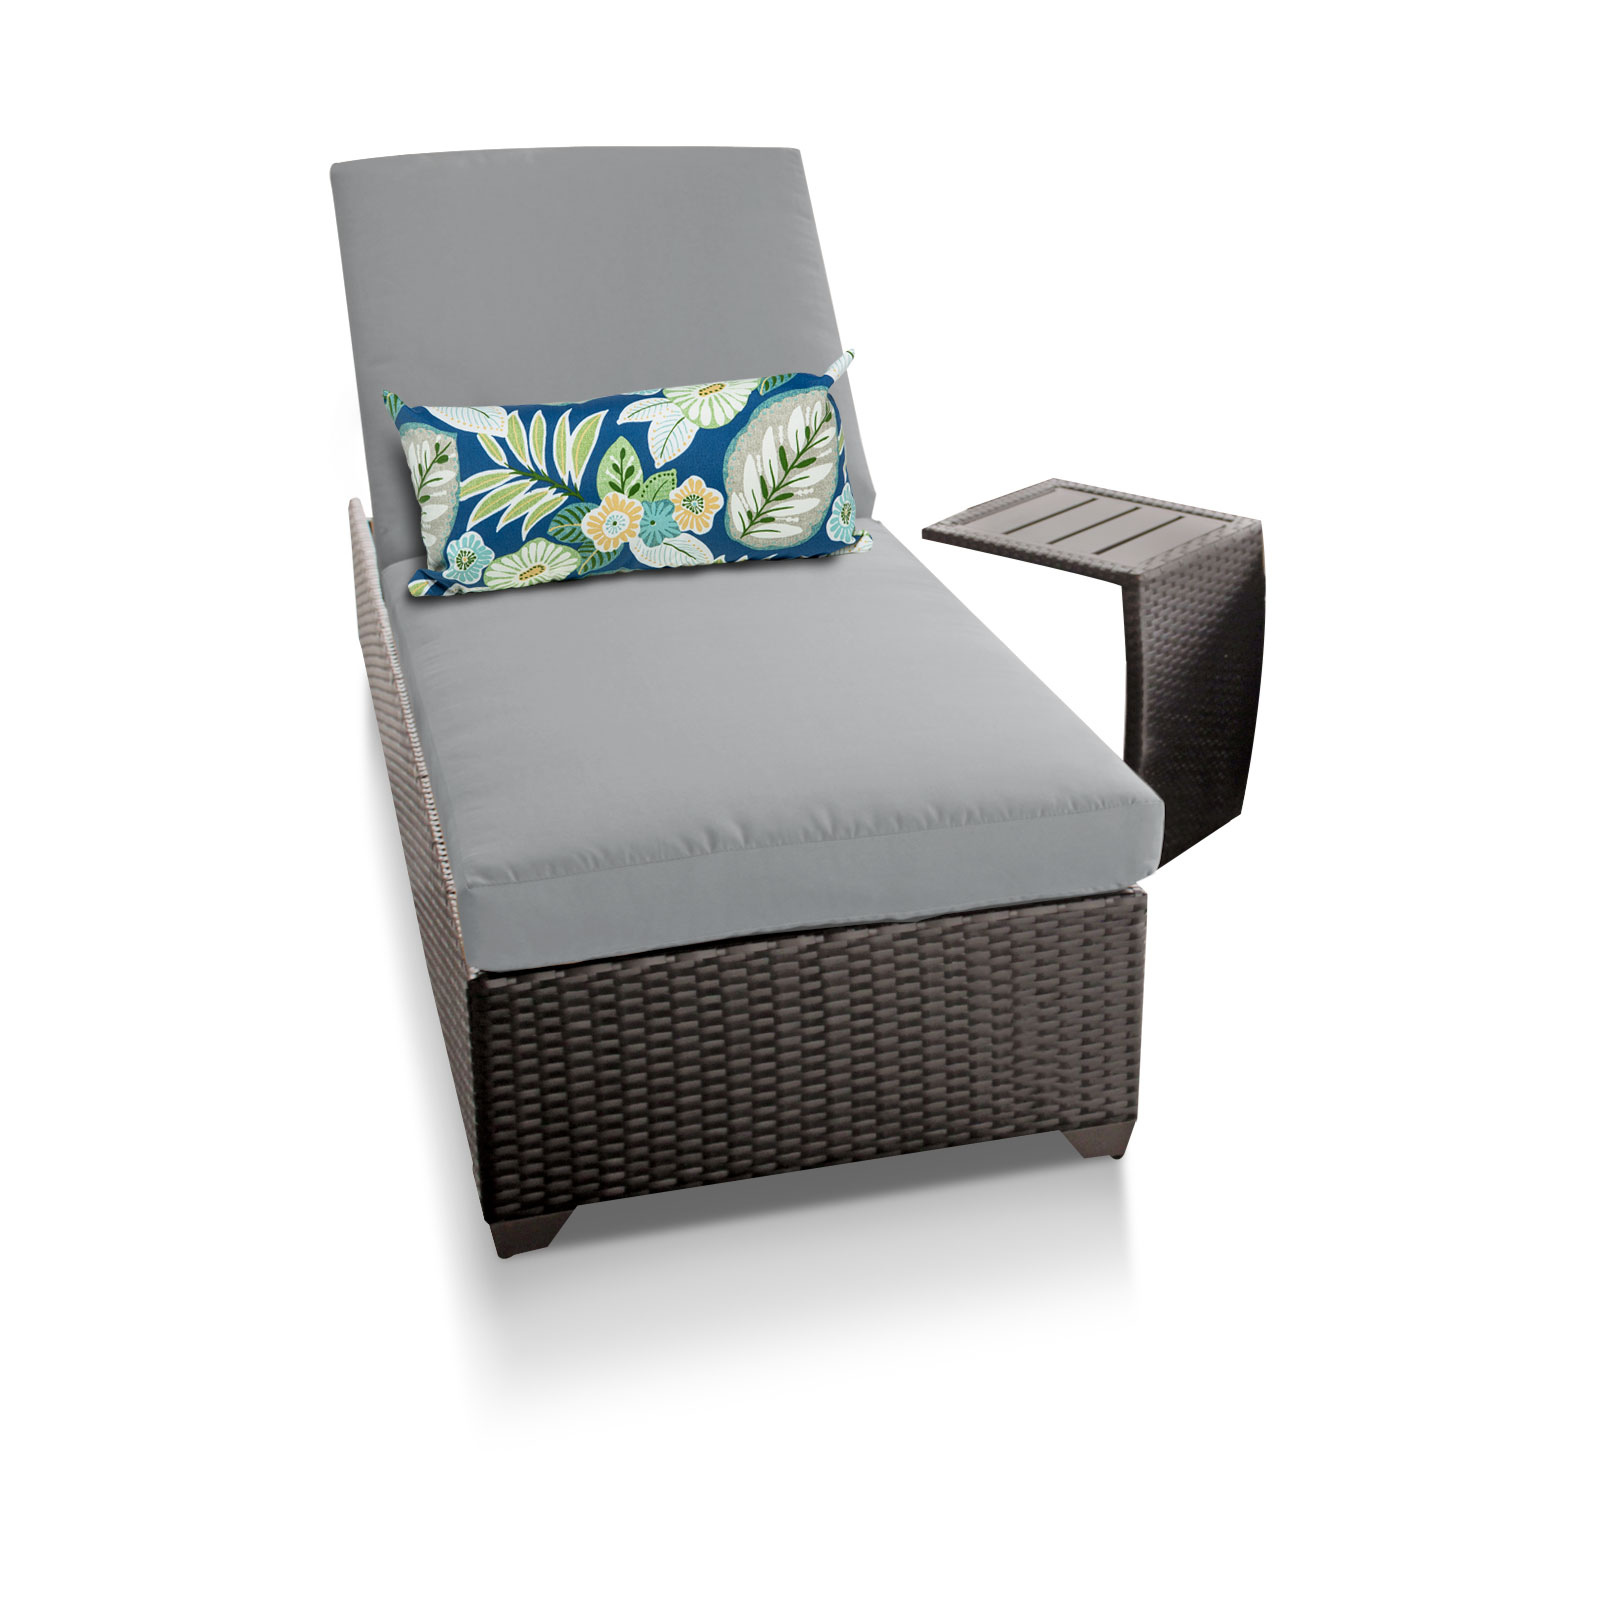 Classic chaise outdoor wicker patio furniture with side table for Chaise table